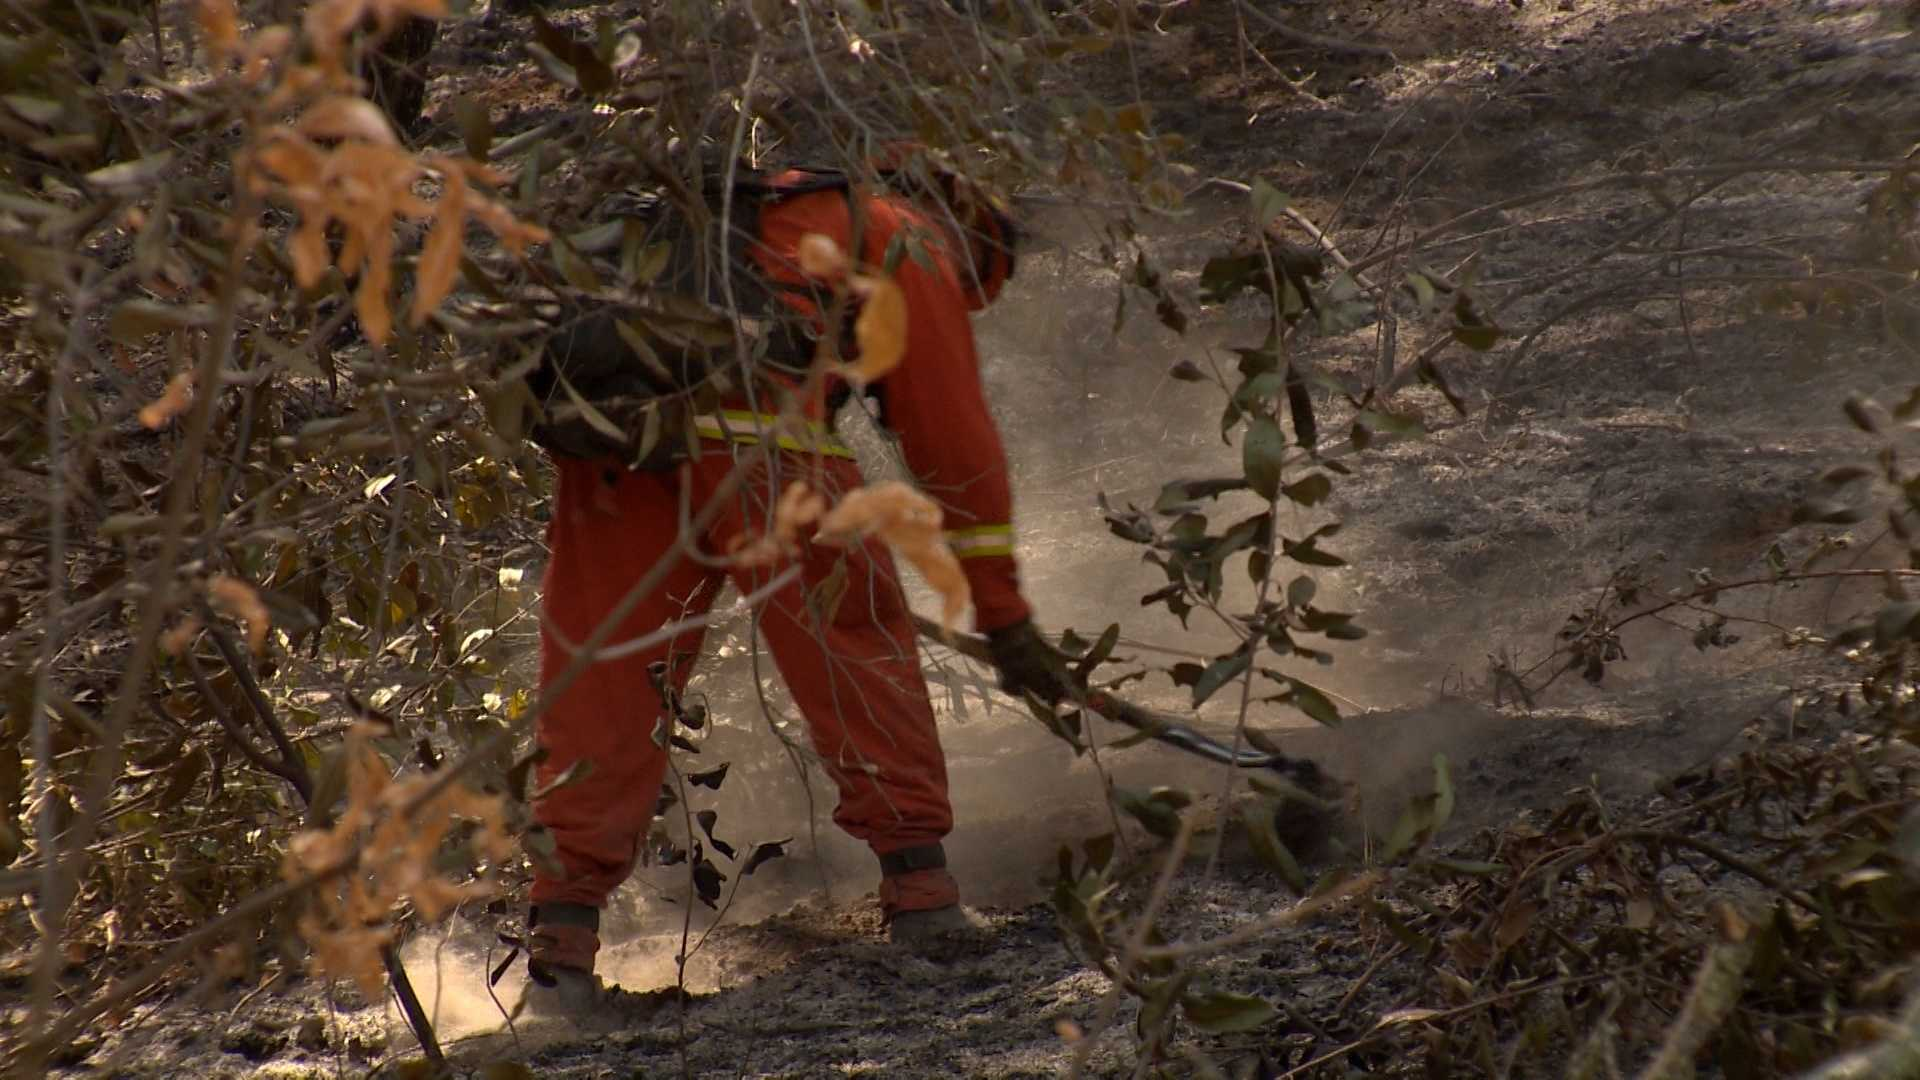 Crews worked to clear lines along the fire burning in El Dorado and Amador counties. (July 27, 2014)